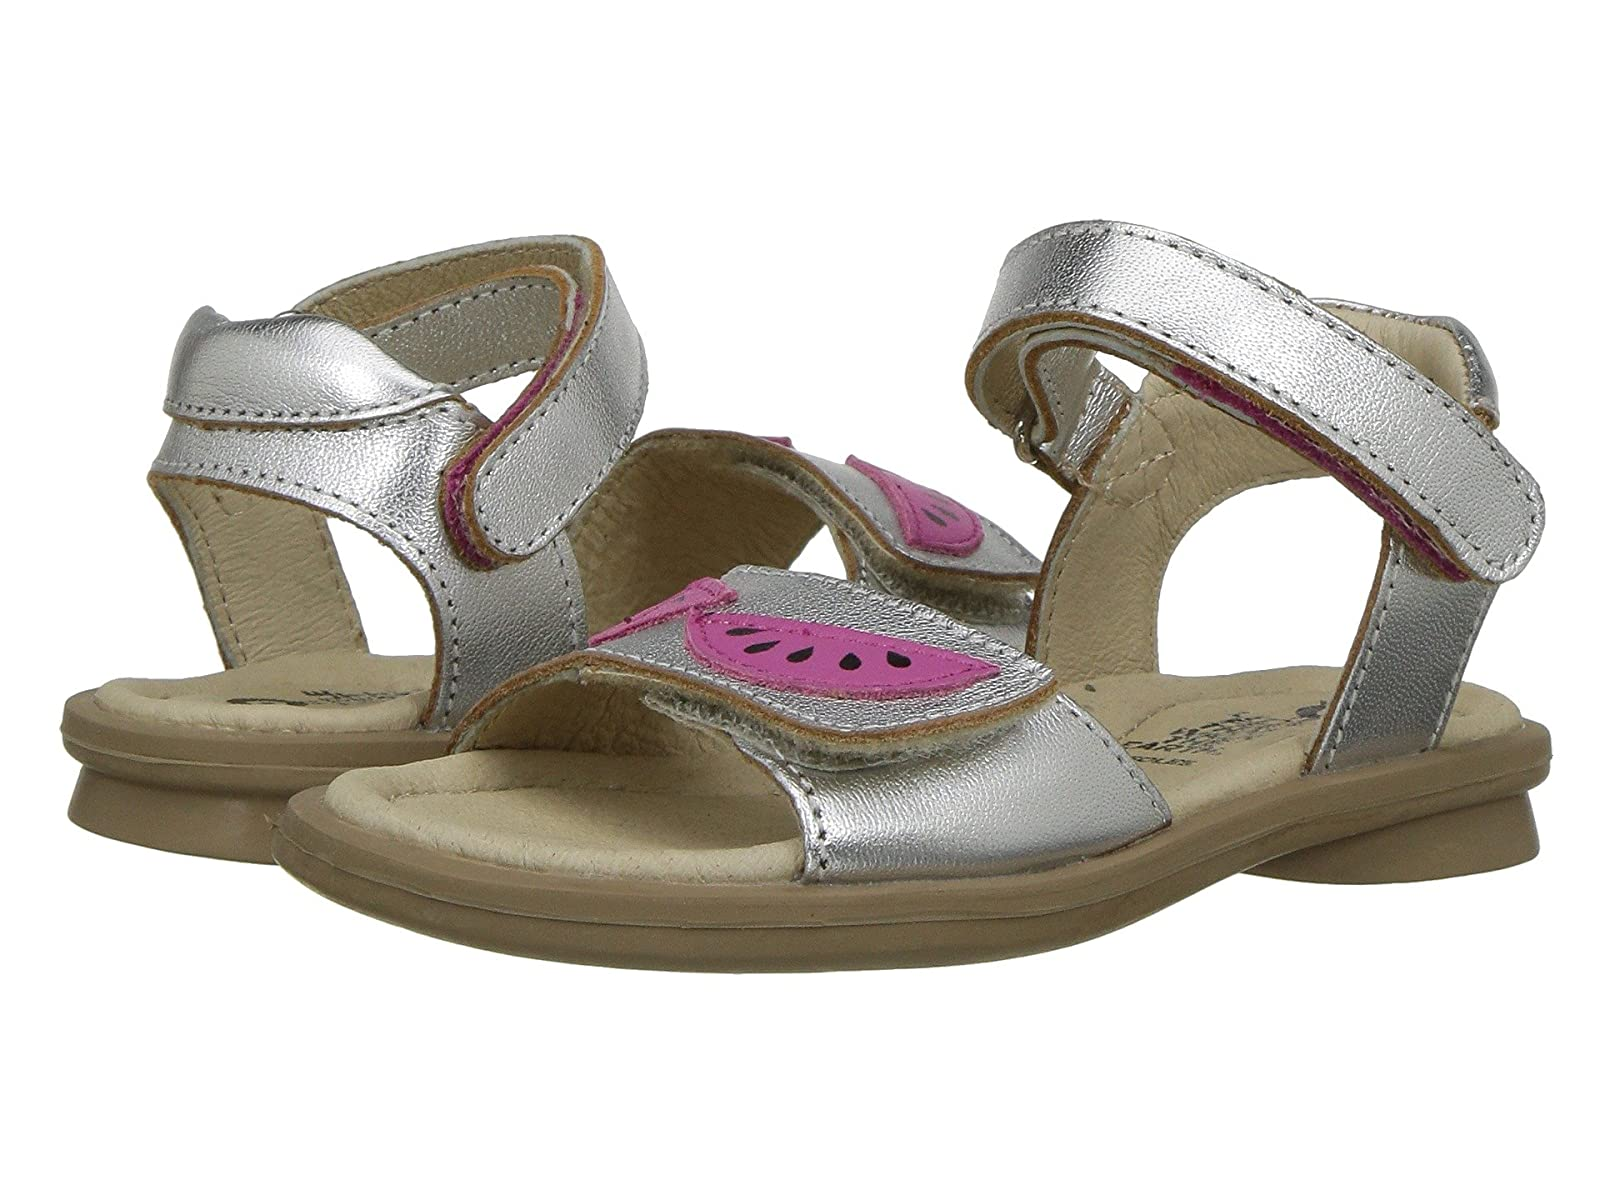 Old Soles Soles Old Tropicana Sandal (Toddler/Little Kid) c7ca6b